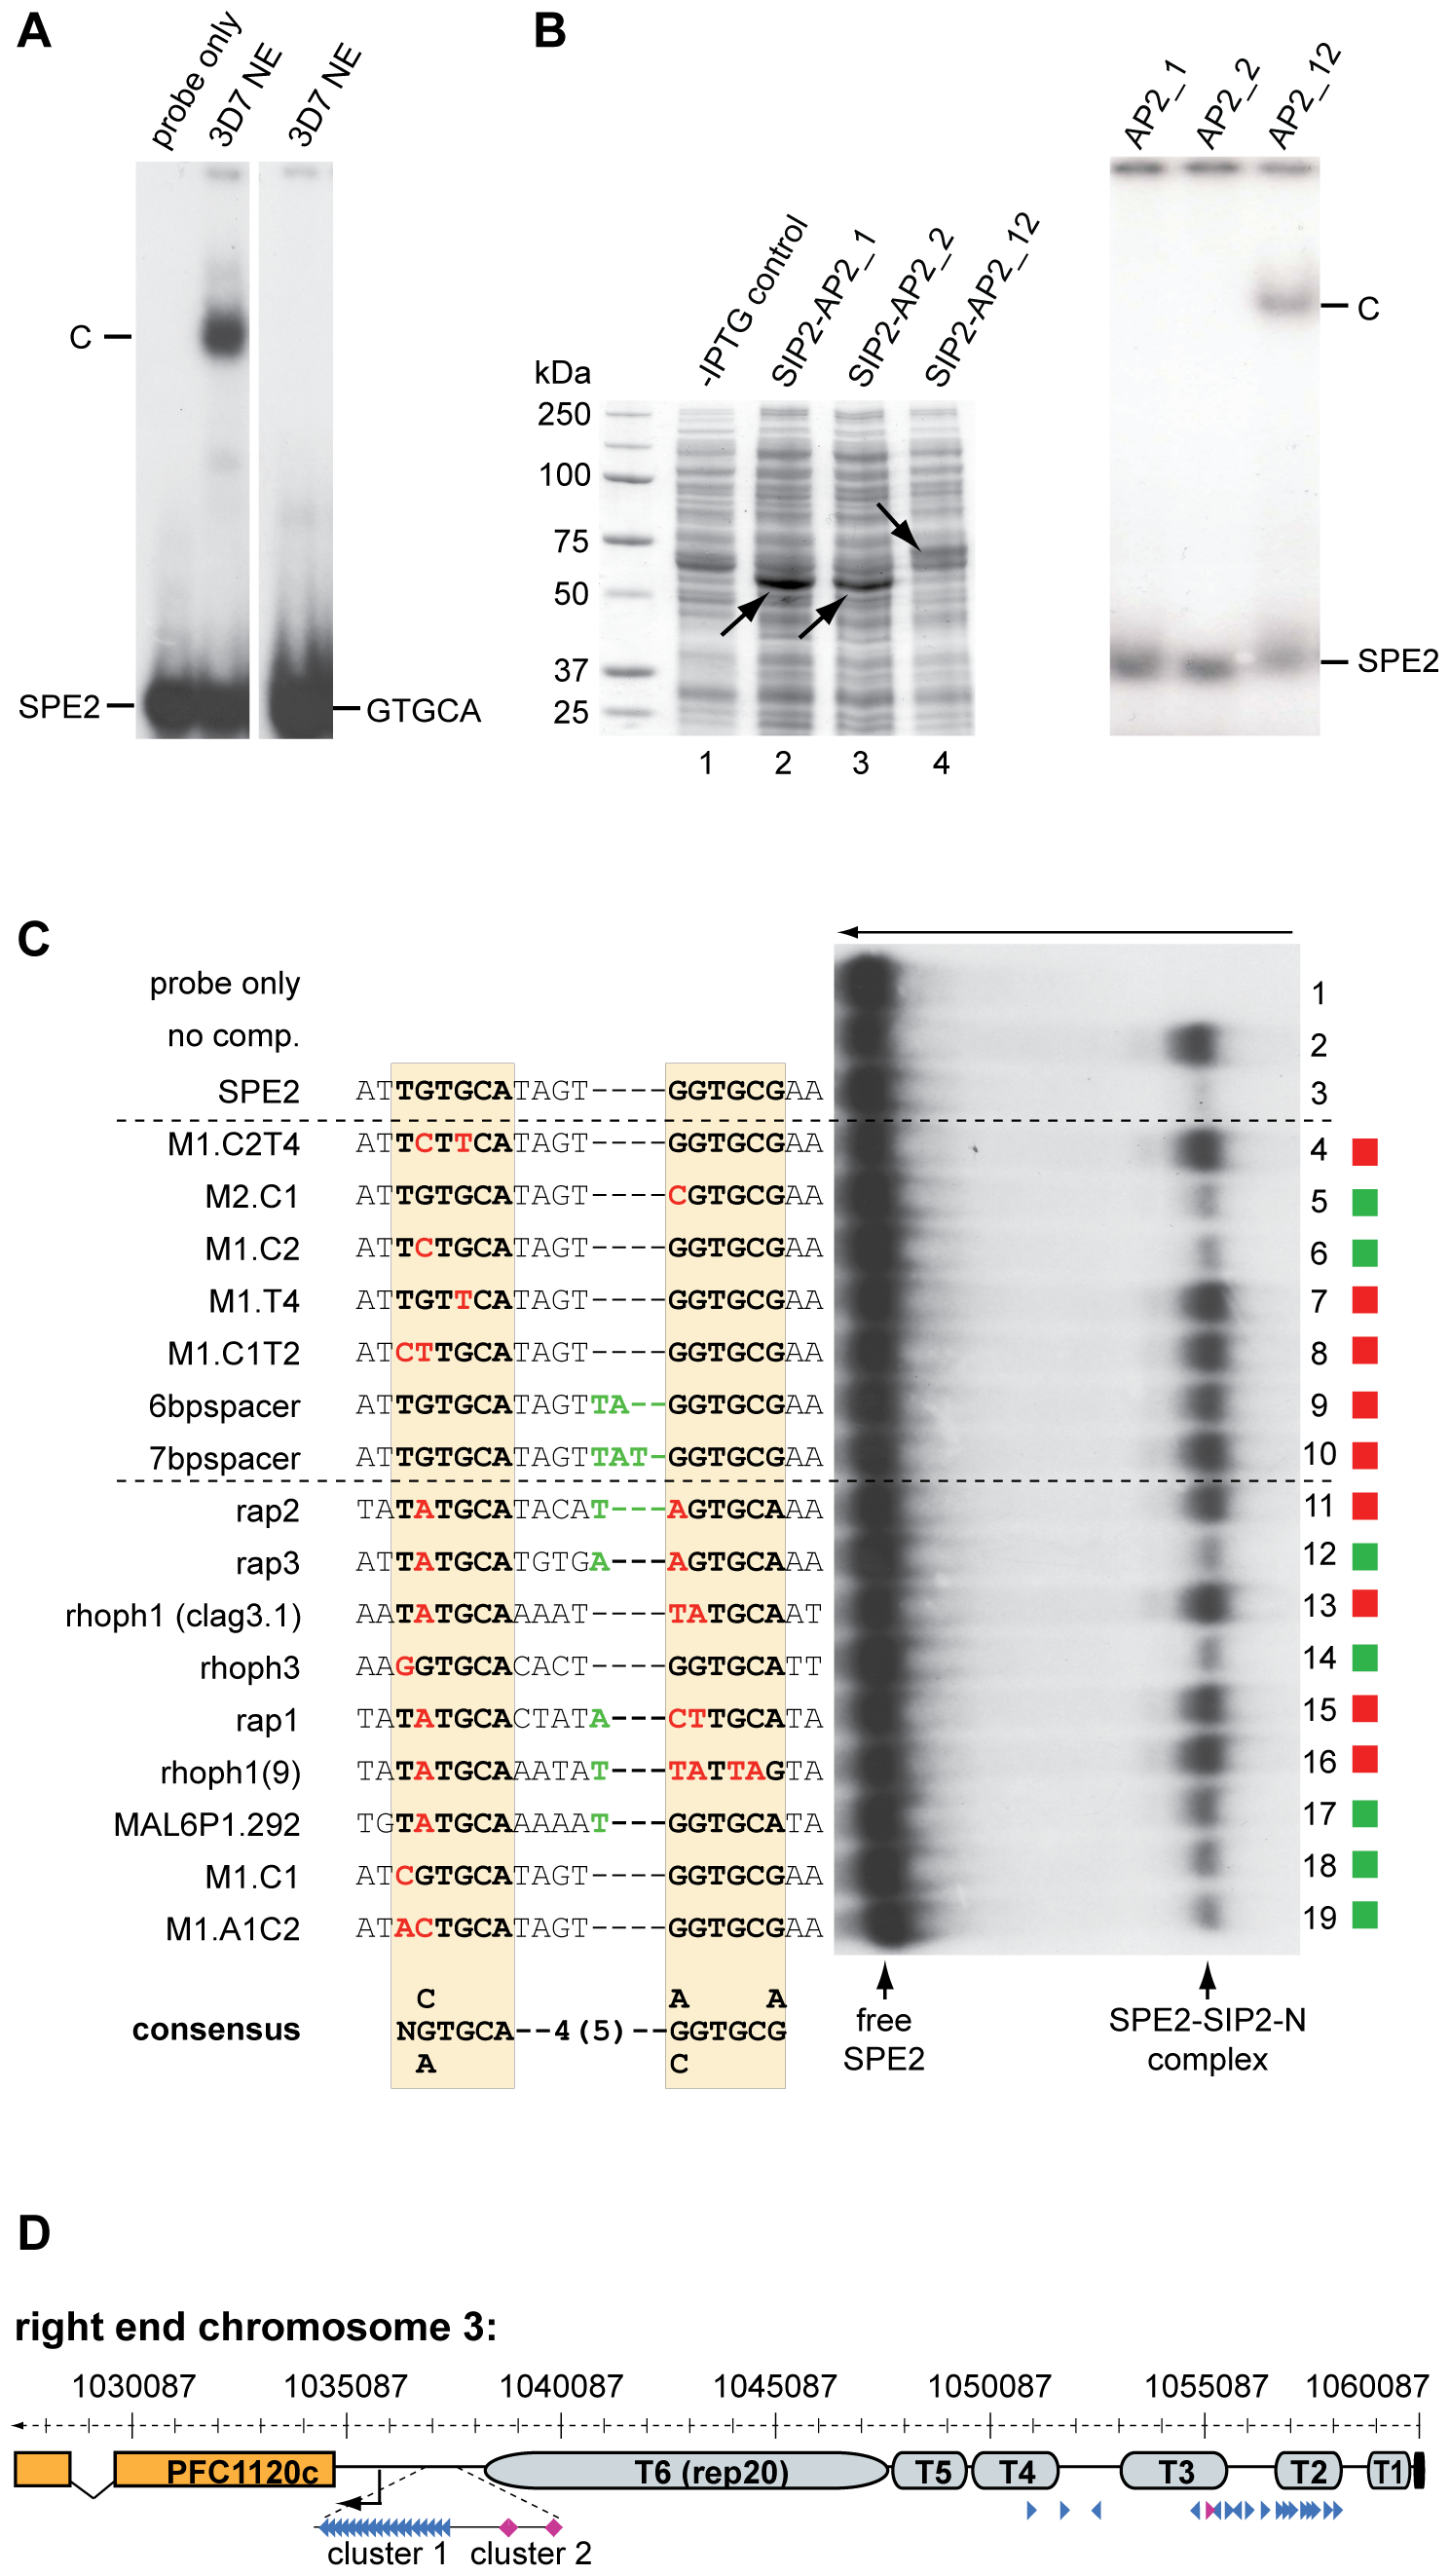 Binding of PfSIP2-N to SPE2 is highly sequence-specific and requires a bipartite motif and both adjacent AP2 domains.